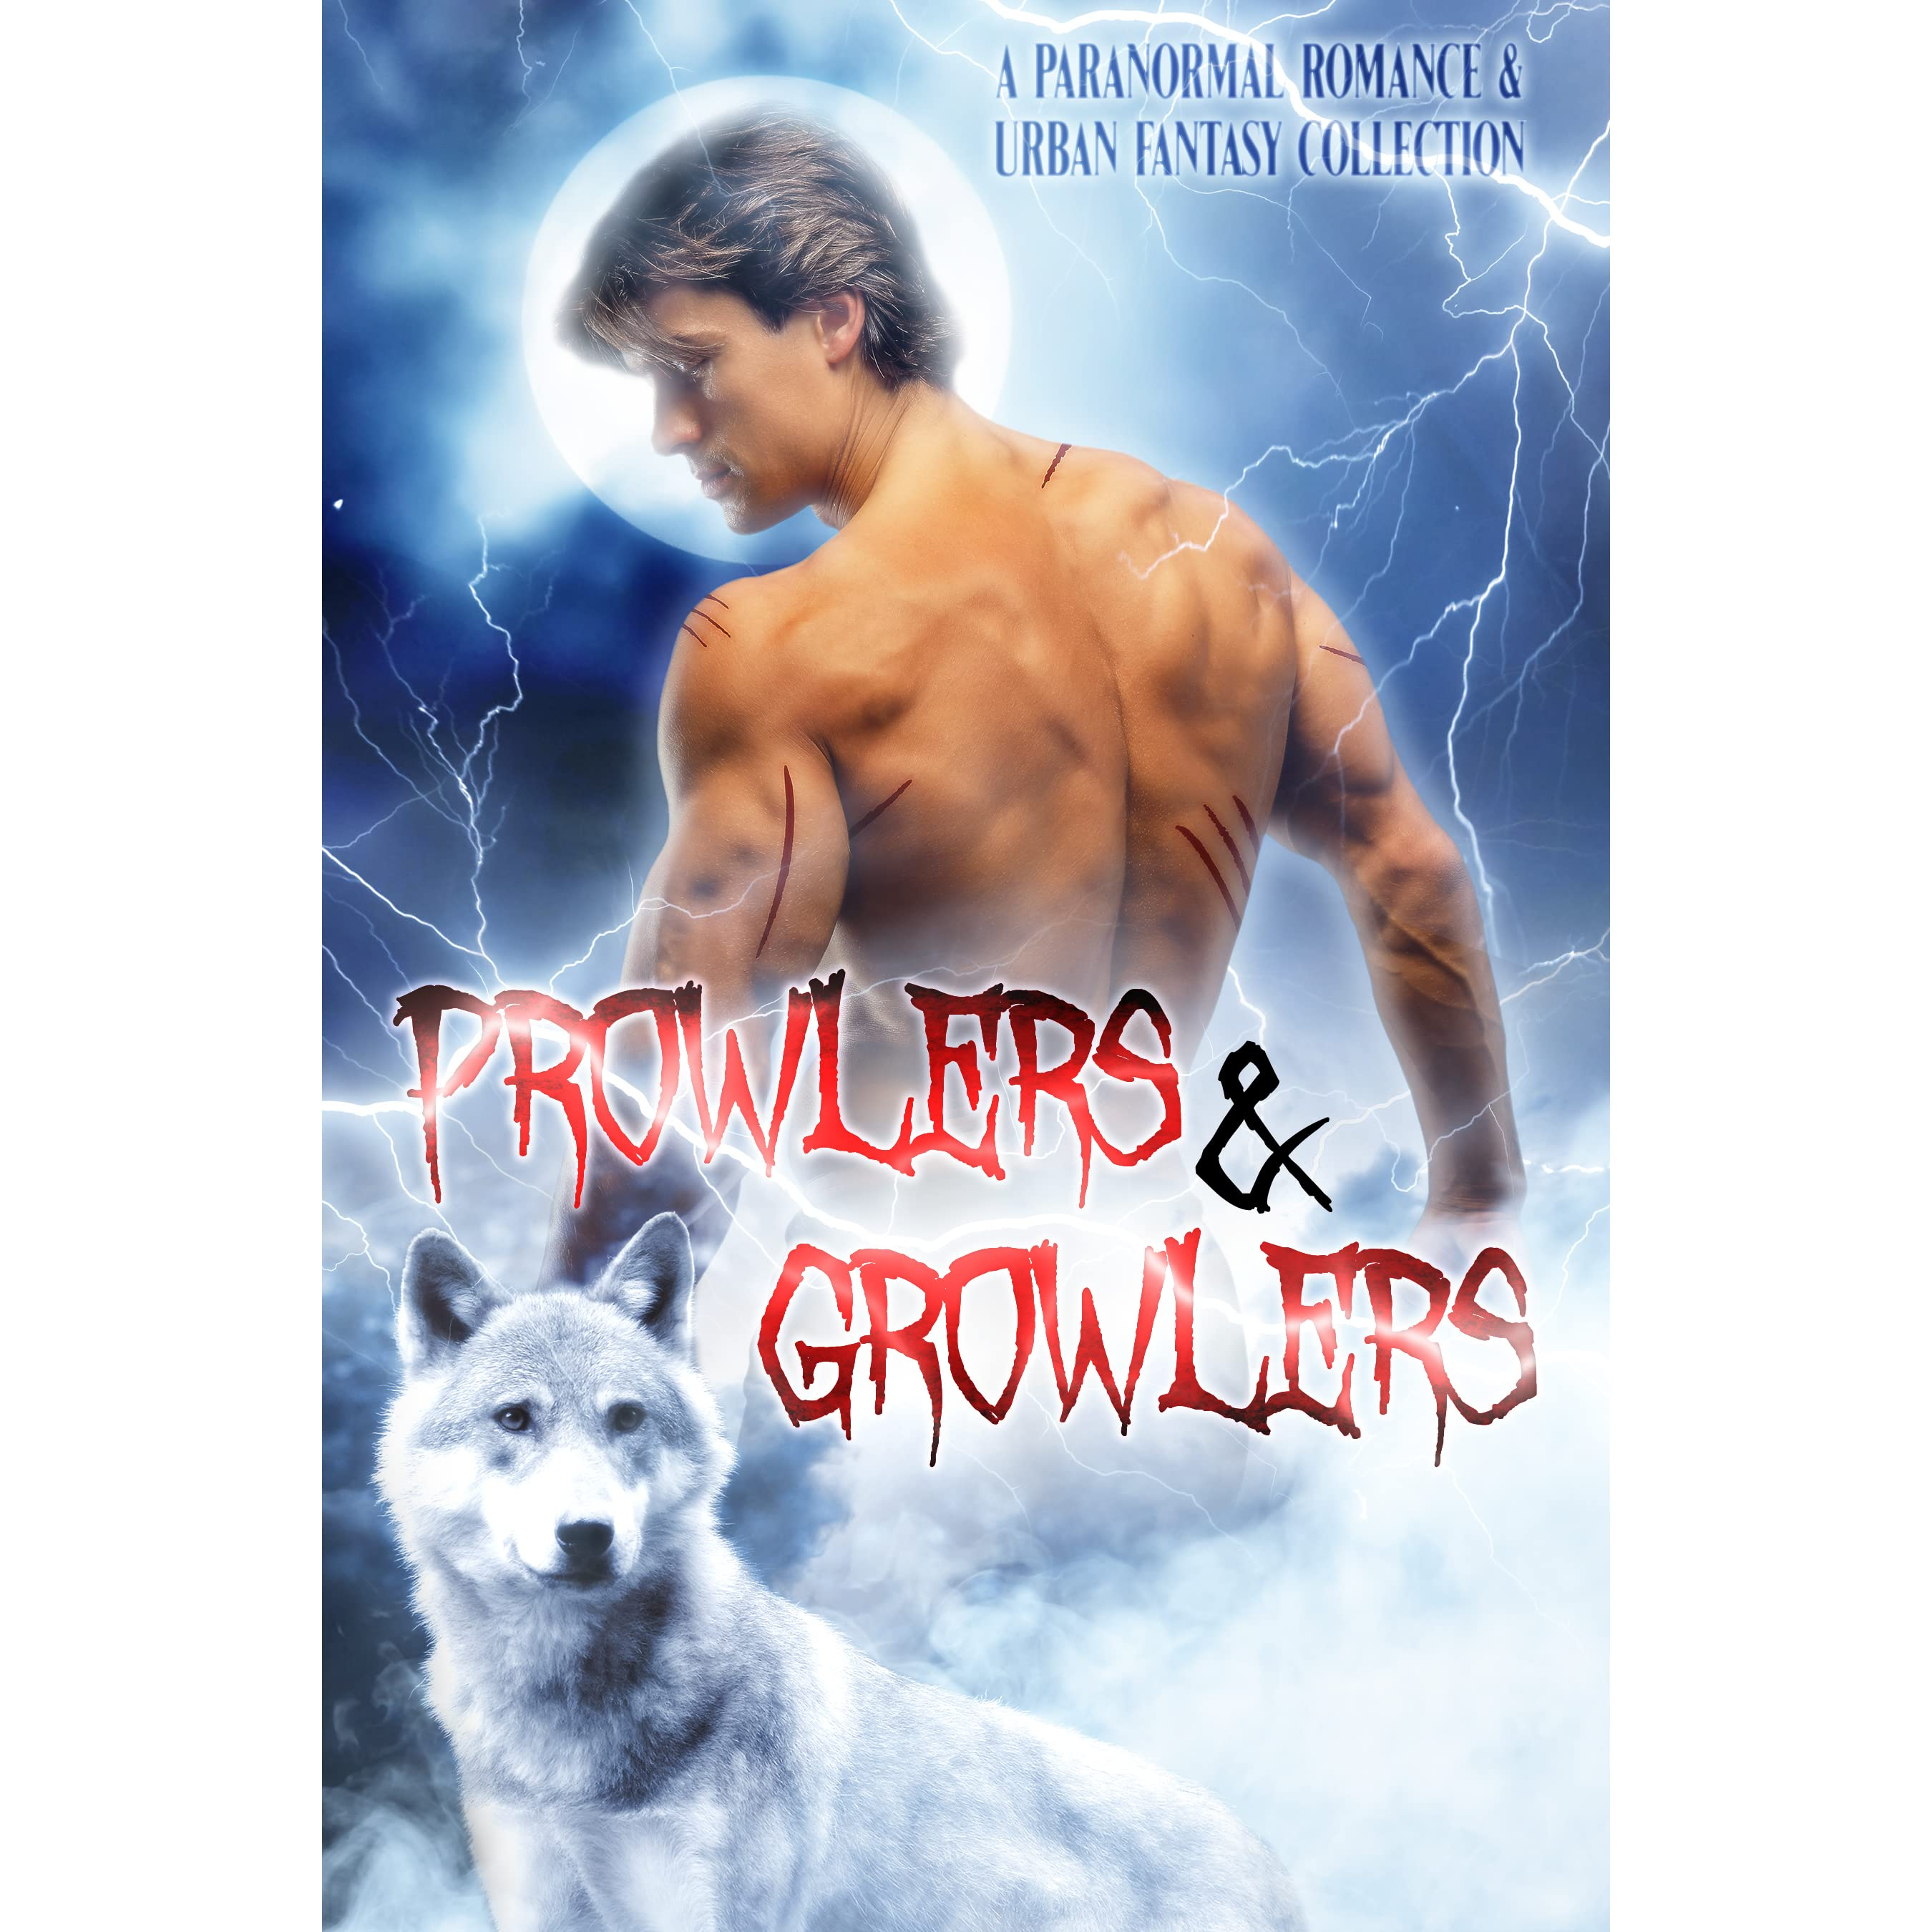 Werewolves Shifters: Prowlers & Growlers: A Paranormal Romance & Urban Fantasy